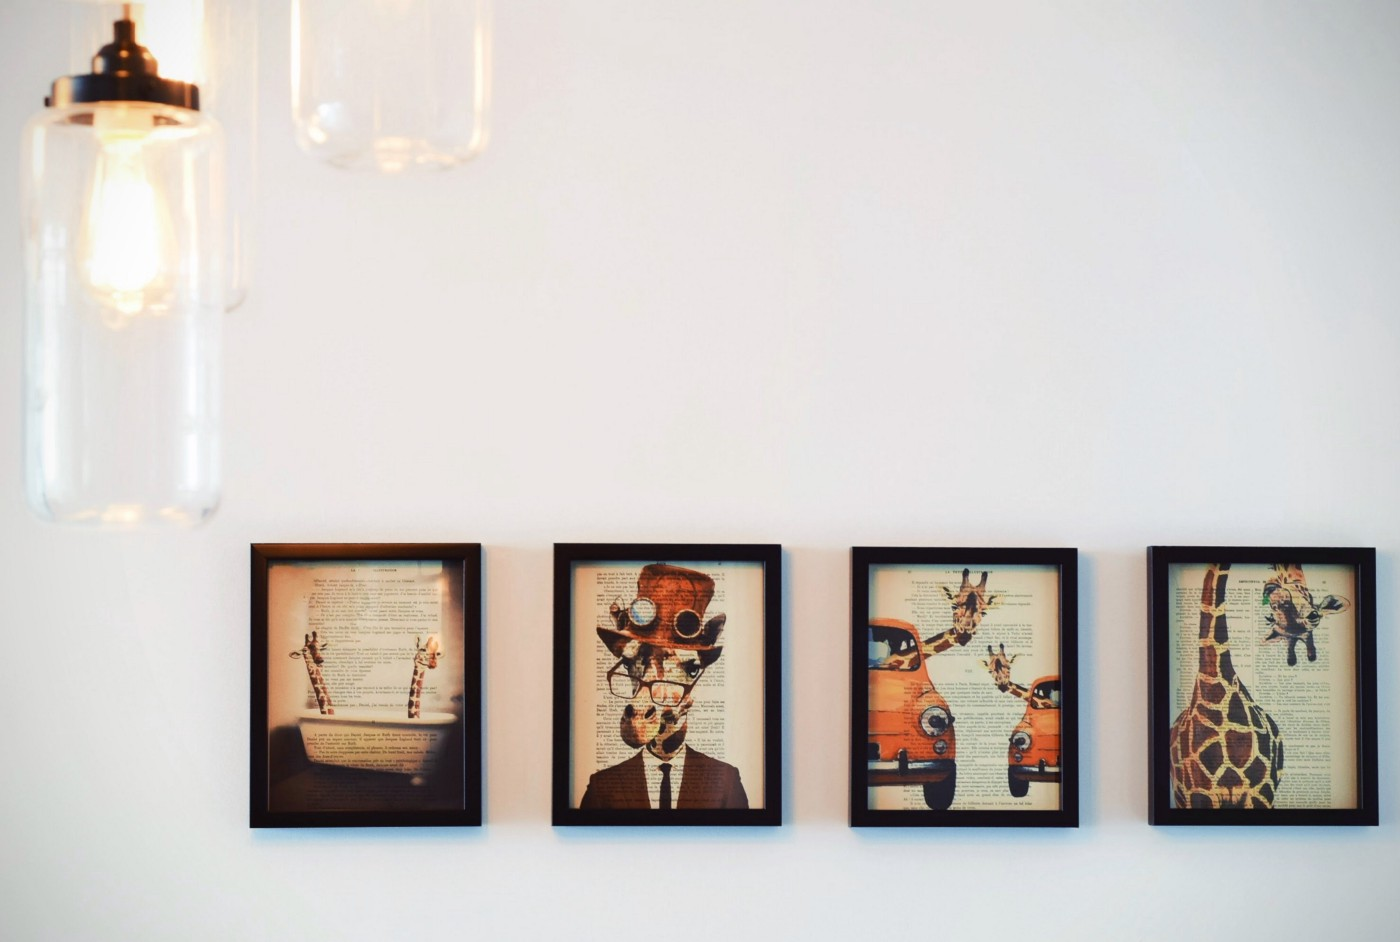 Four framed photos of illustrated giraffes on a white wall